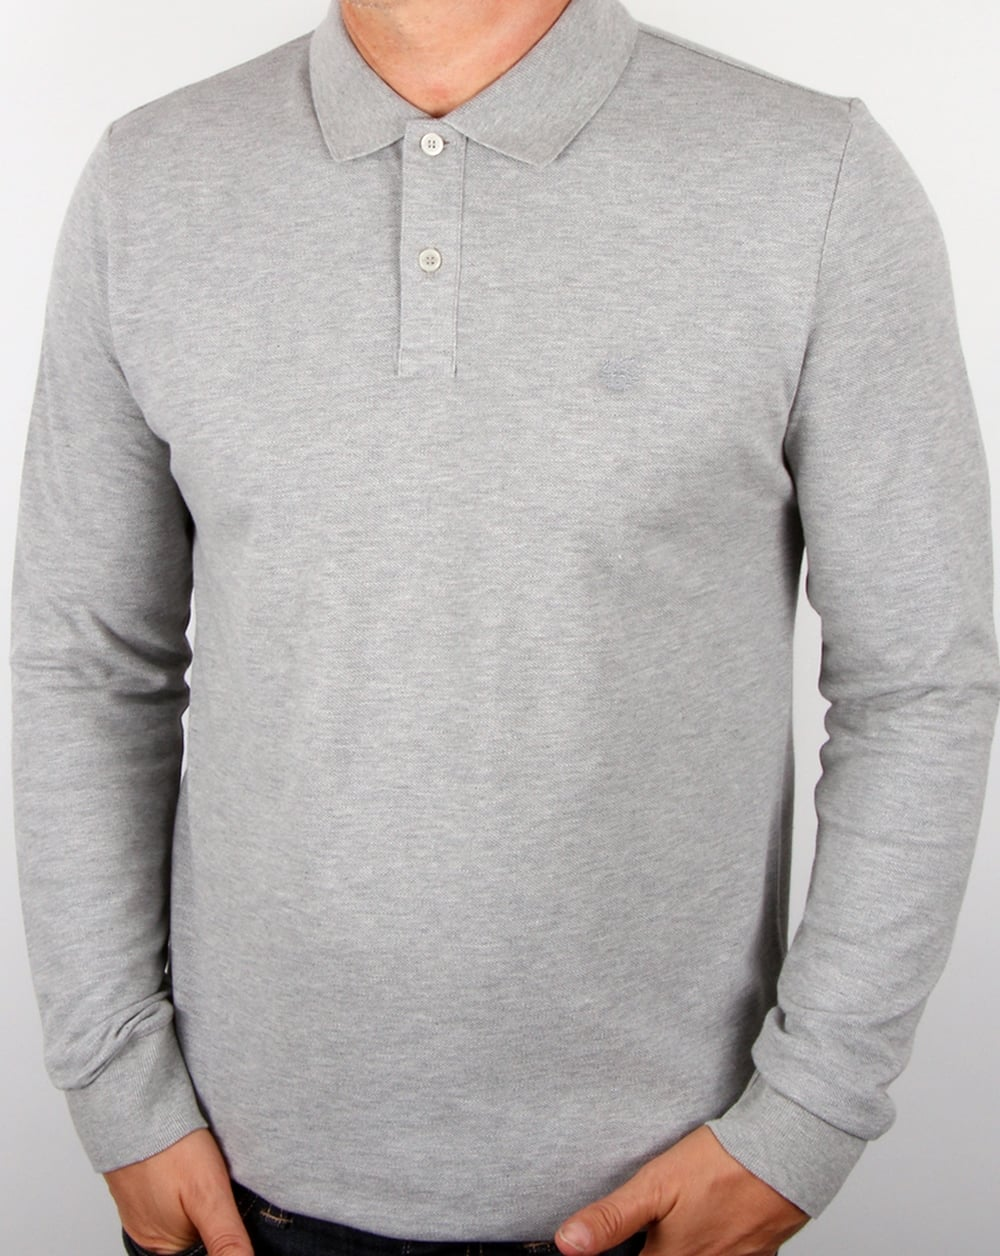 d219dbf9eca7 Aquascutum Hilton Long Sleeve Polo Shirt Grey,top,mens,cotton